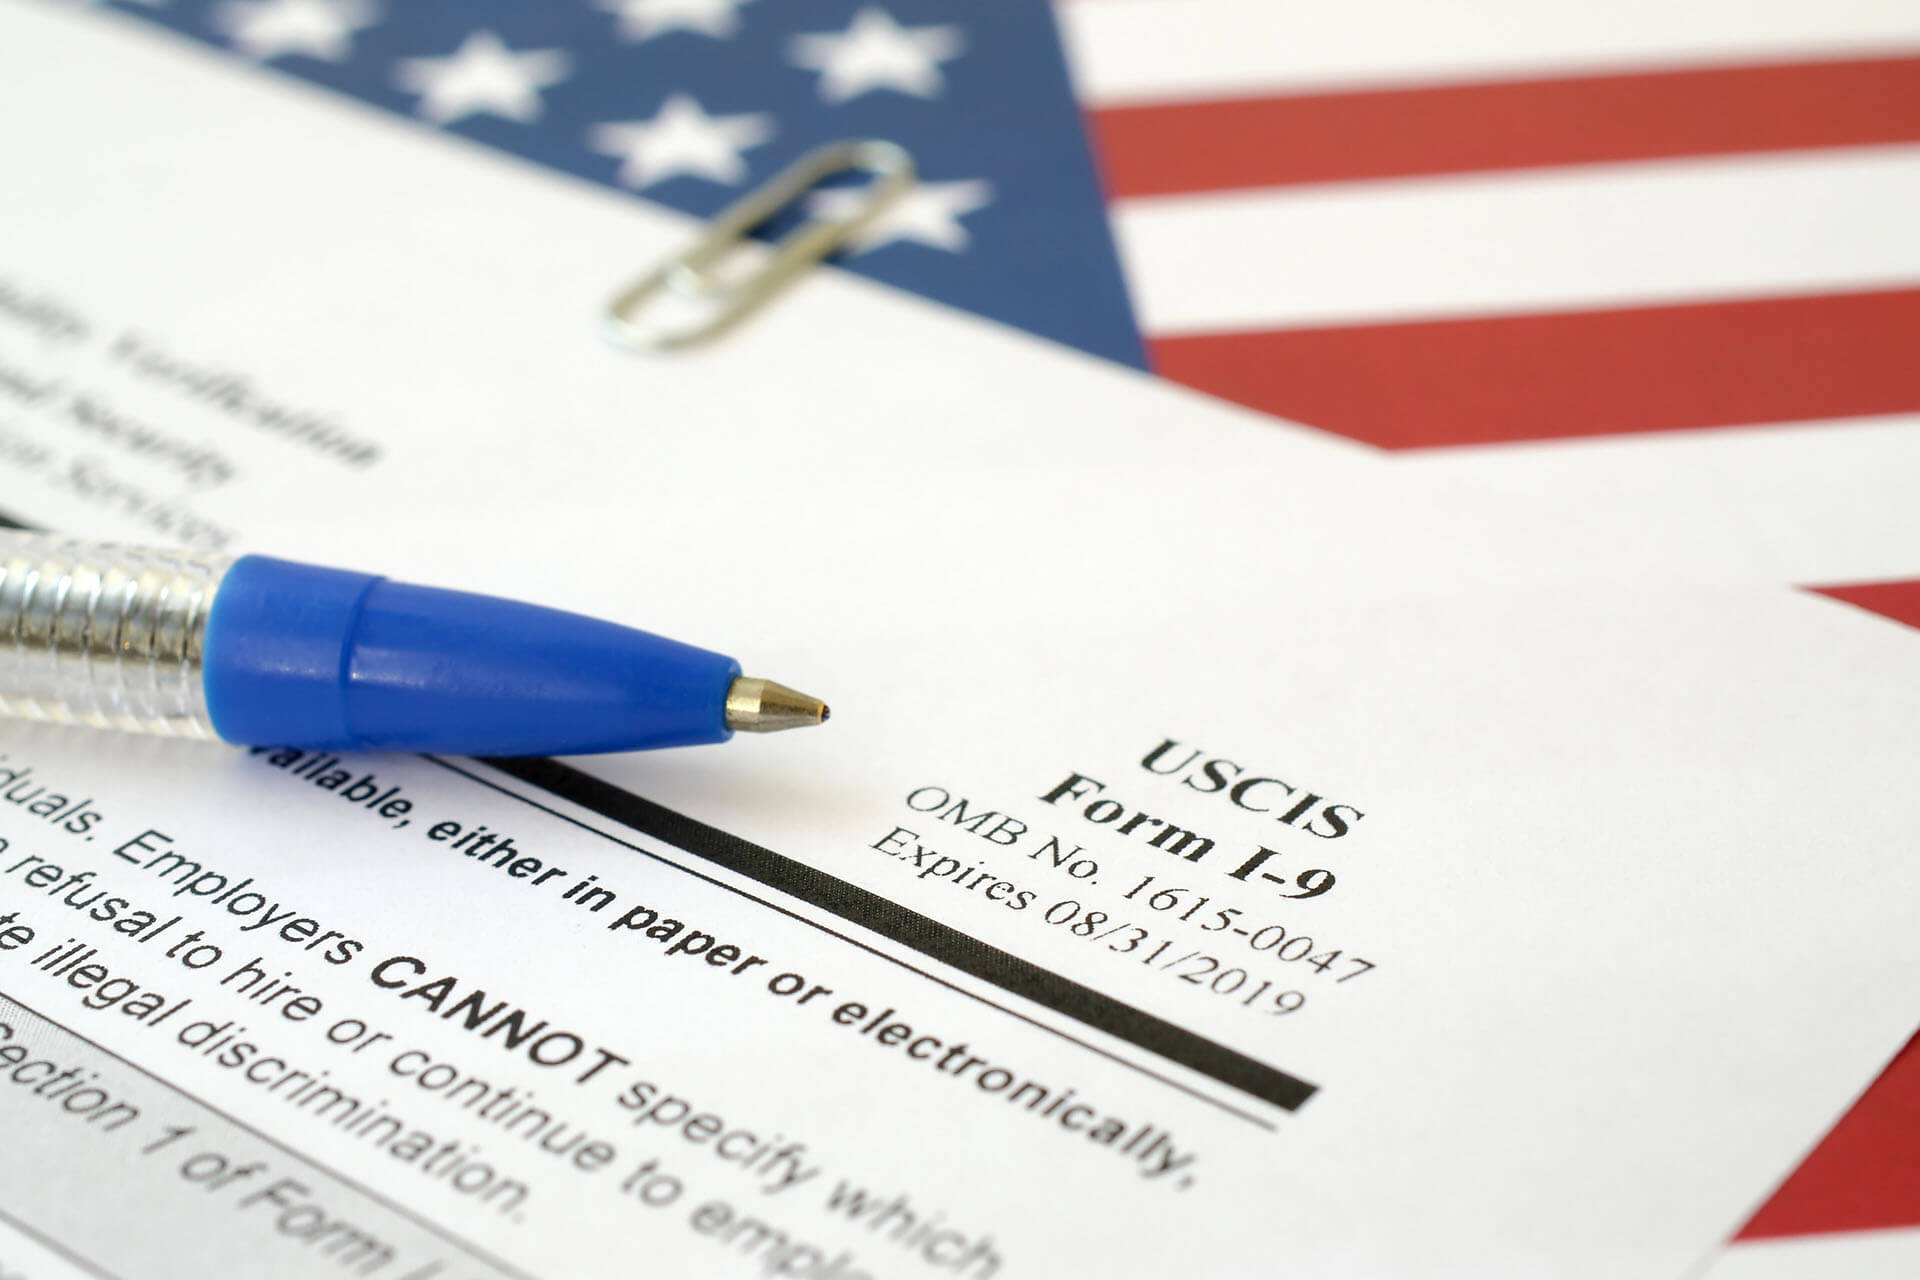 US: USCIS Issues Updated Guidance for Form I-9 Receipts